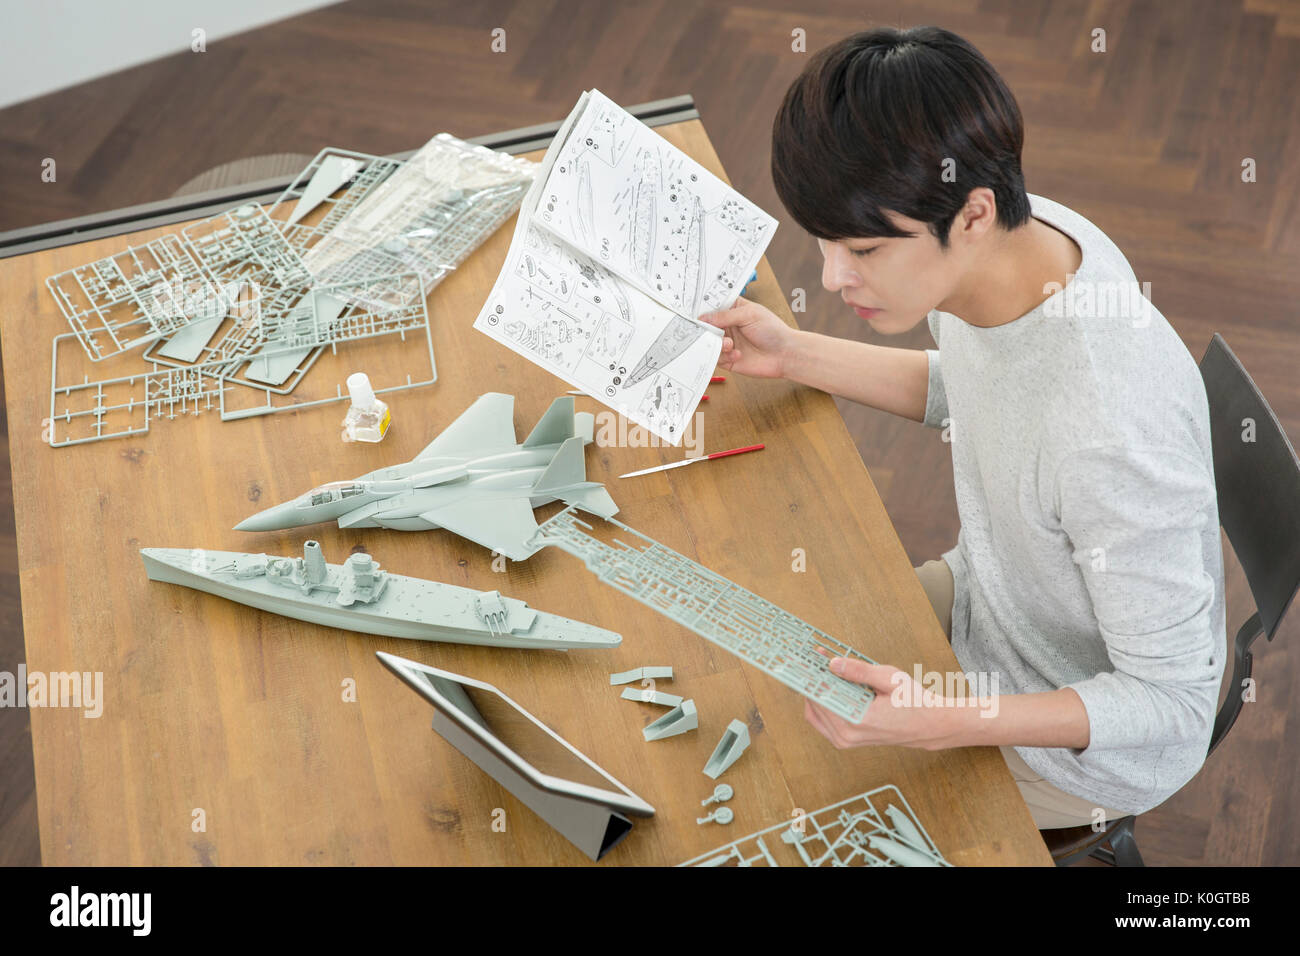 Portrait of male kidult making a model airplane Stock Photo